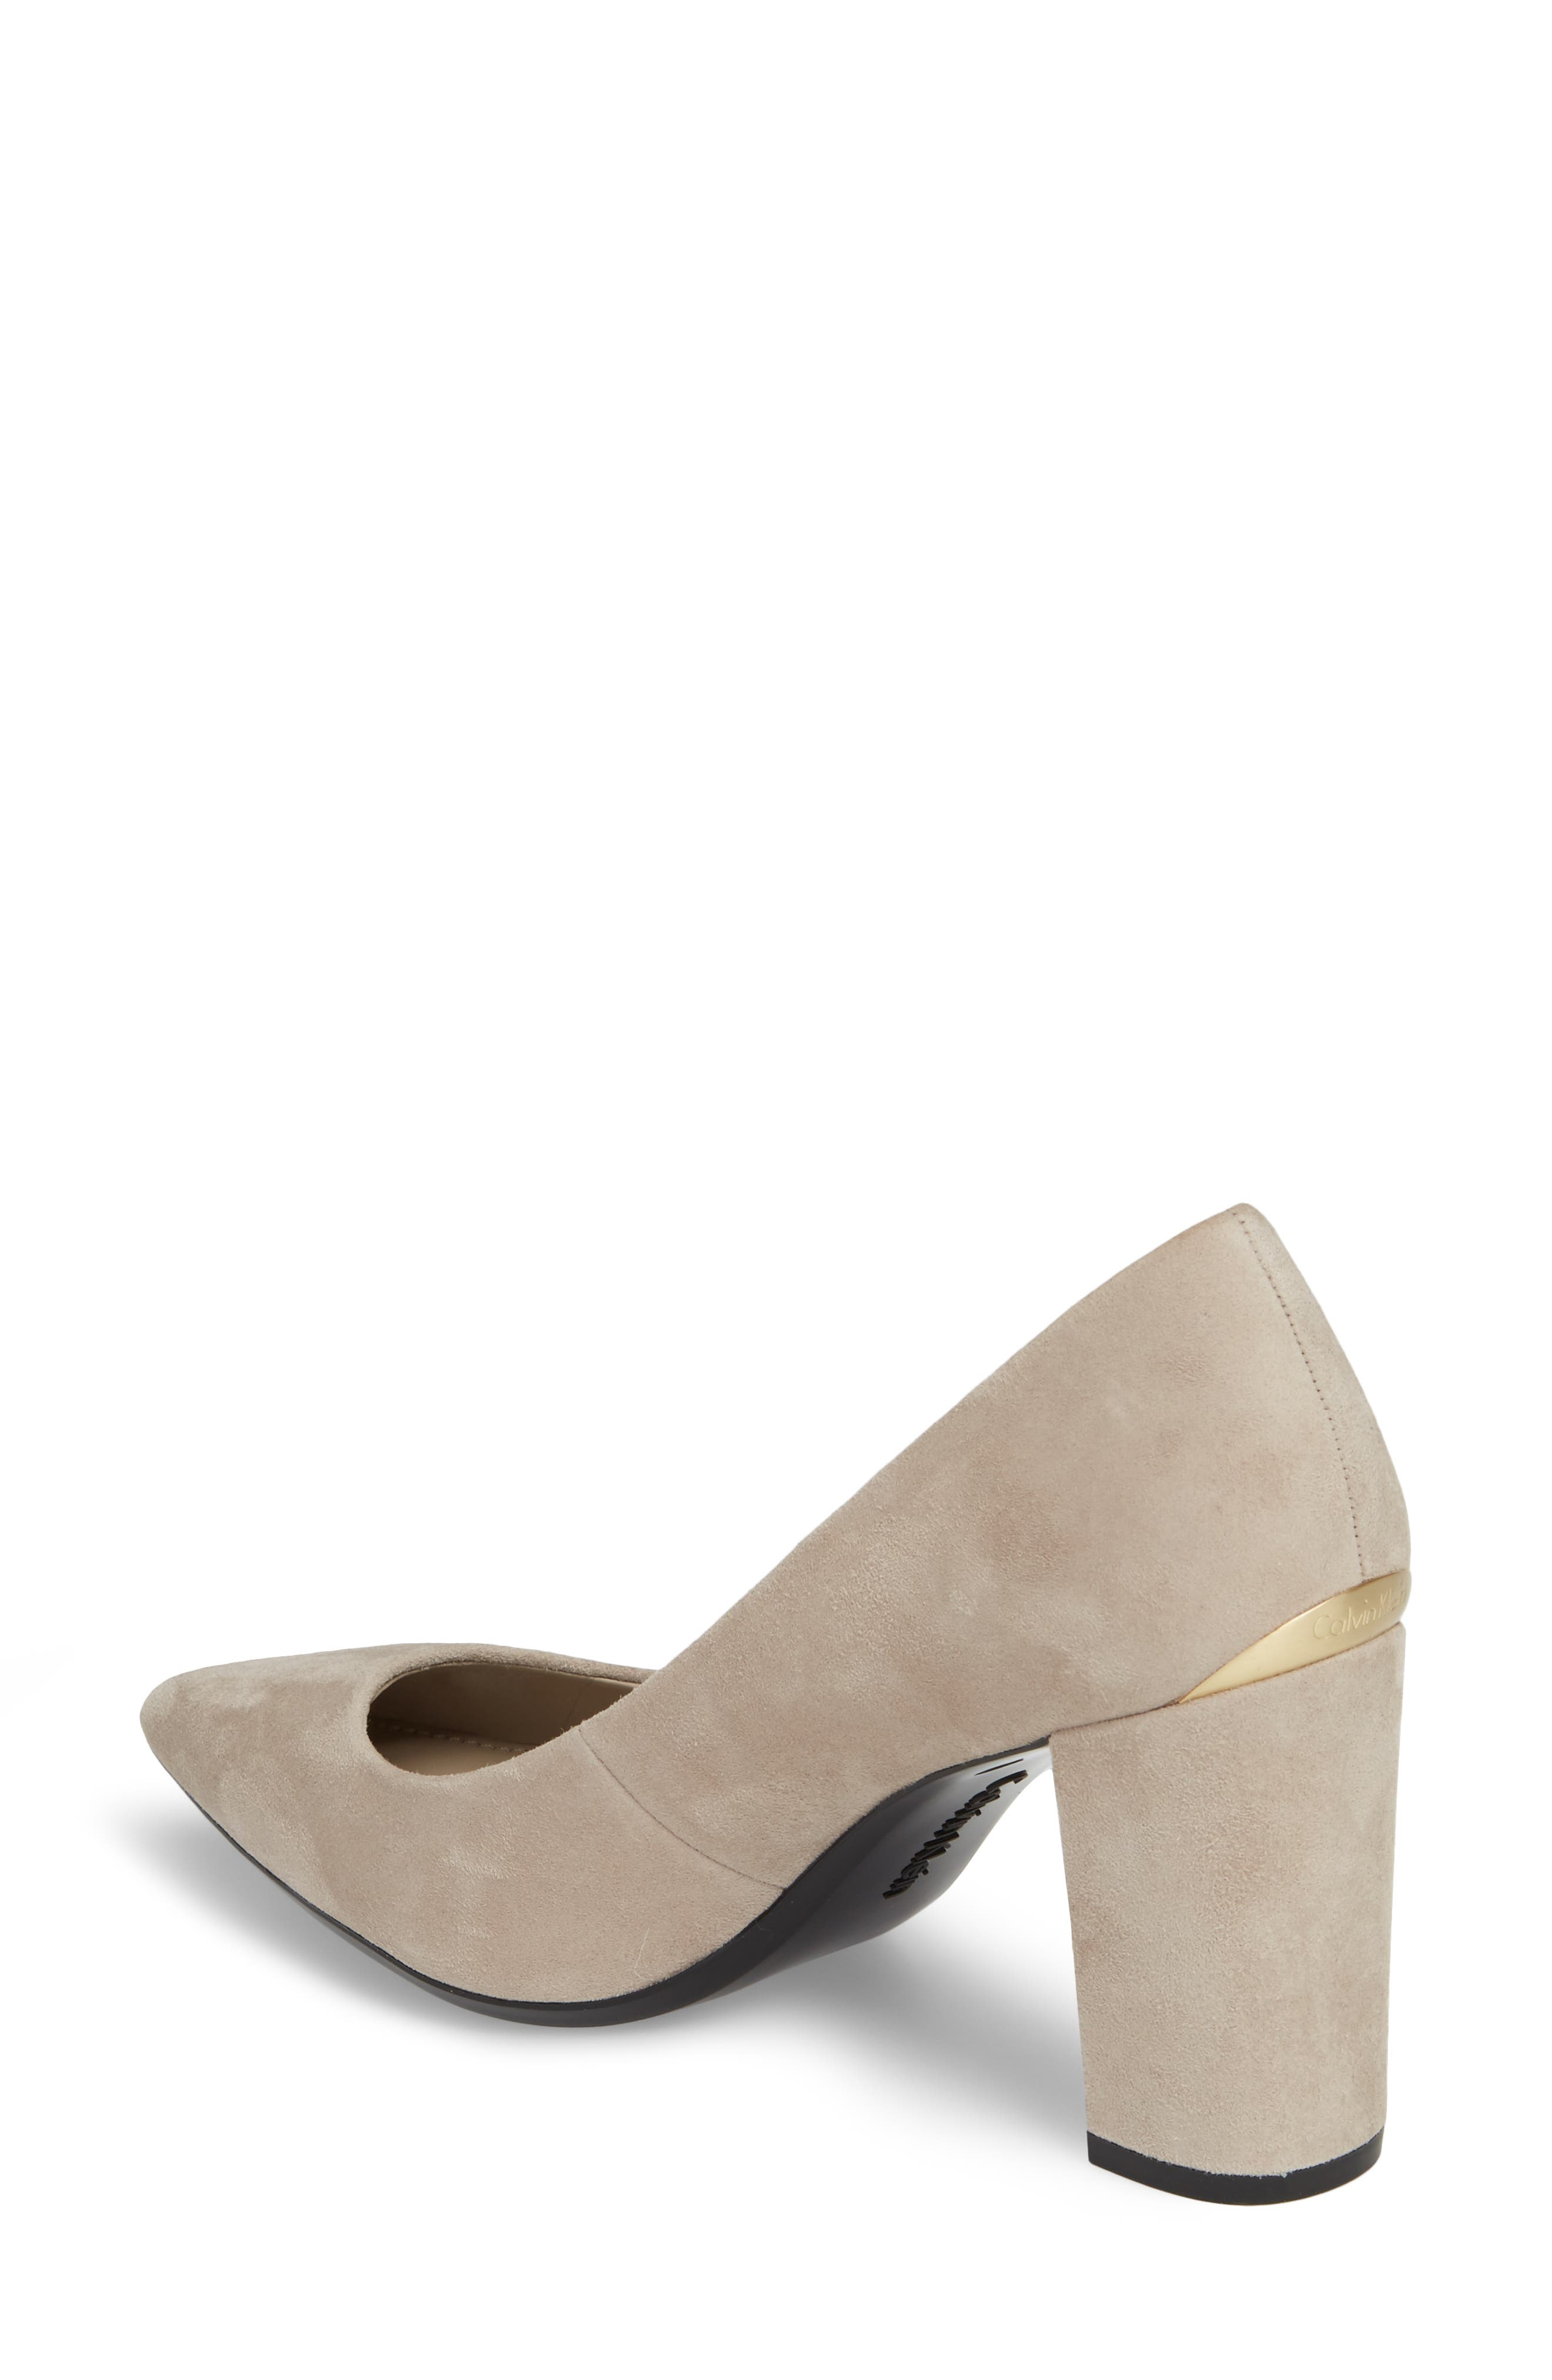 Eviti Pointy Toe Pump,                             Alternate thumbnail 2, color,                             Clay Suede